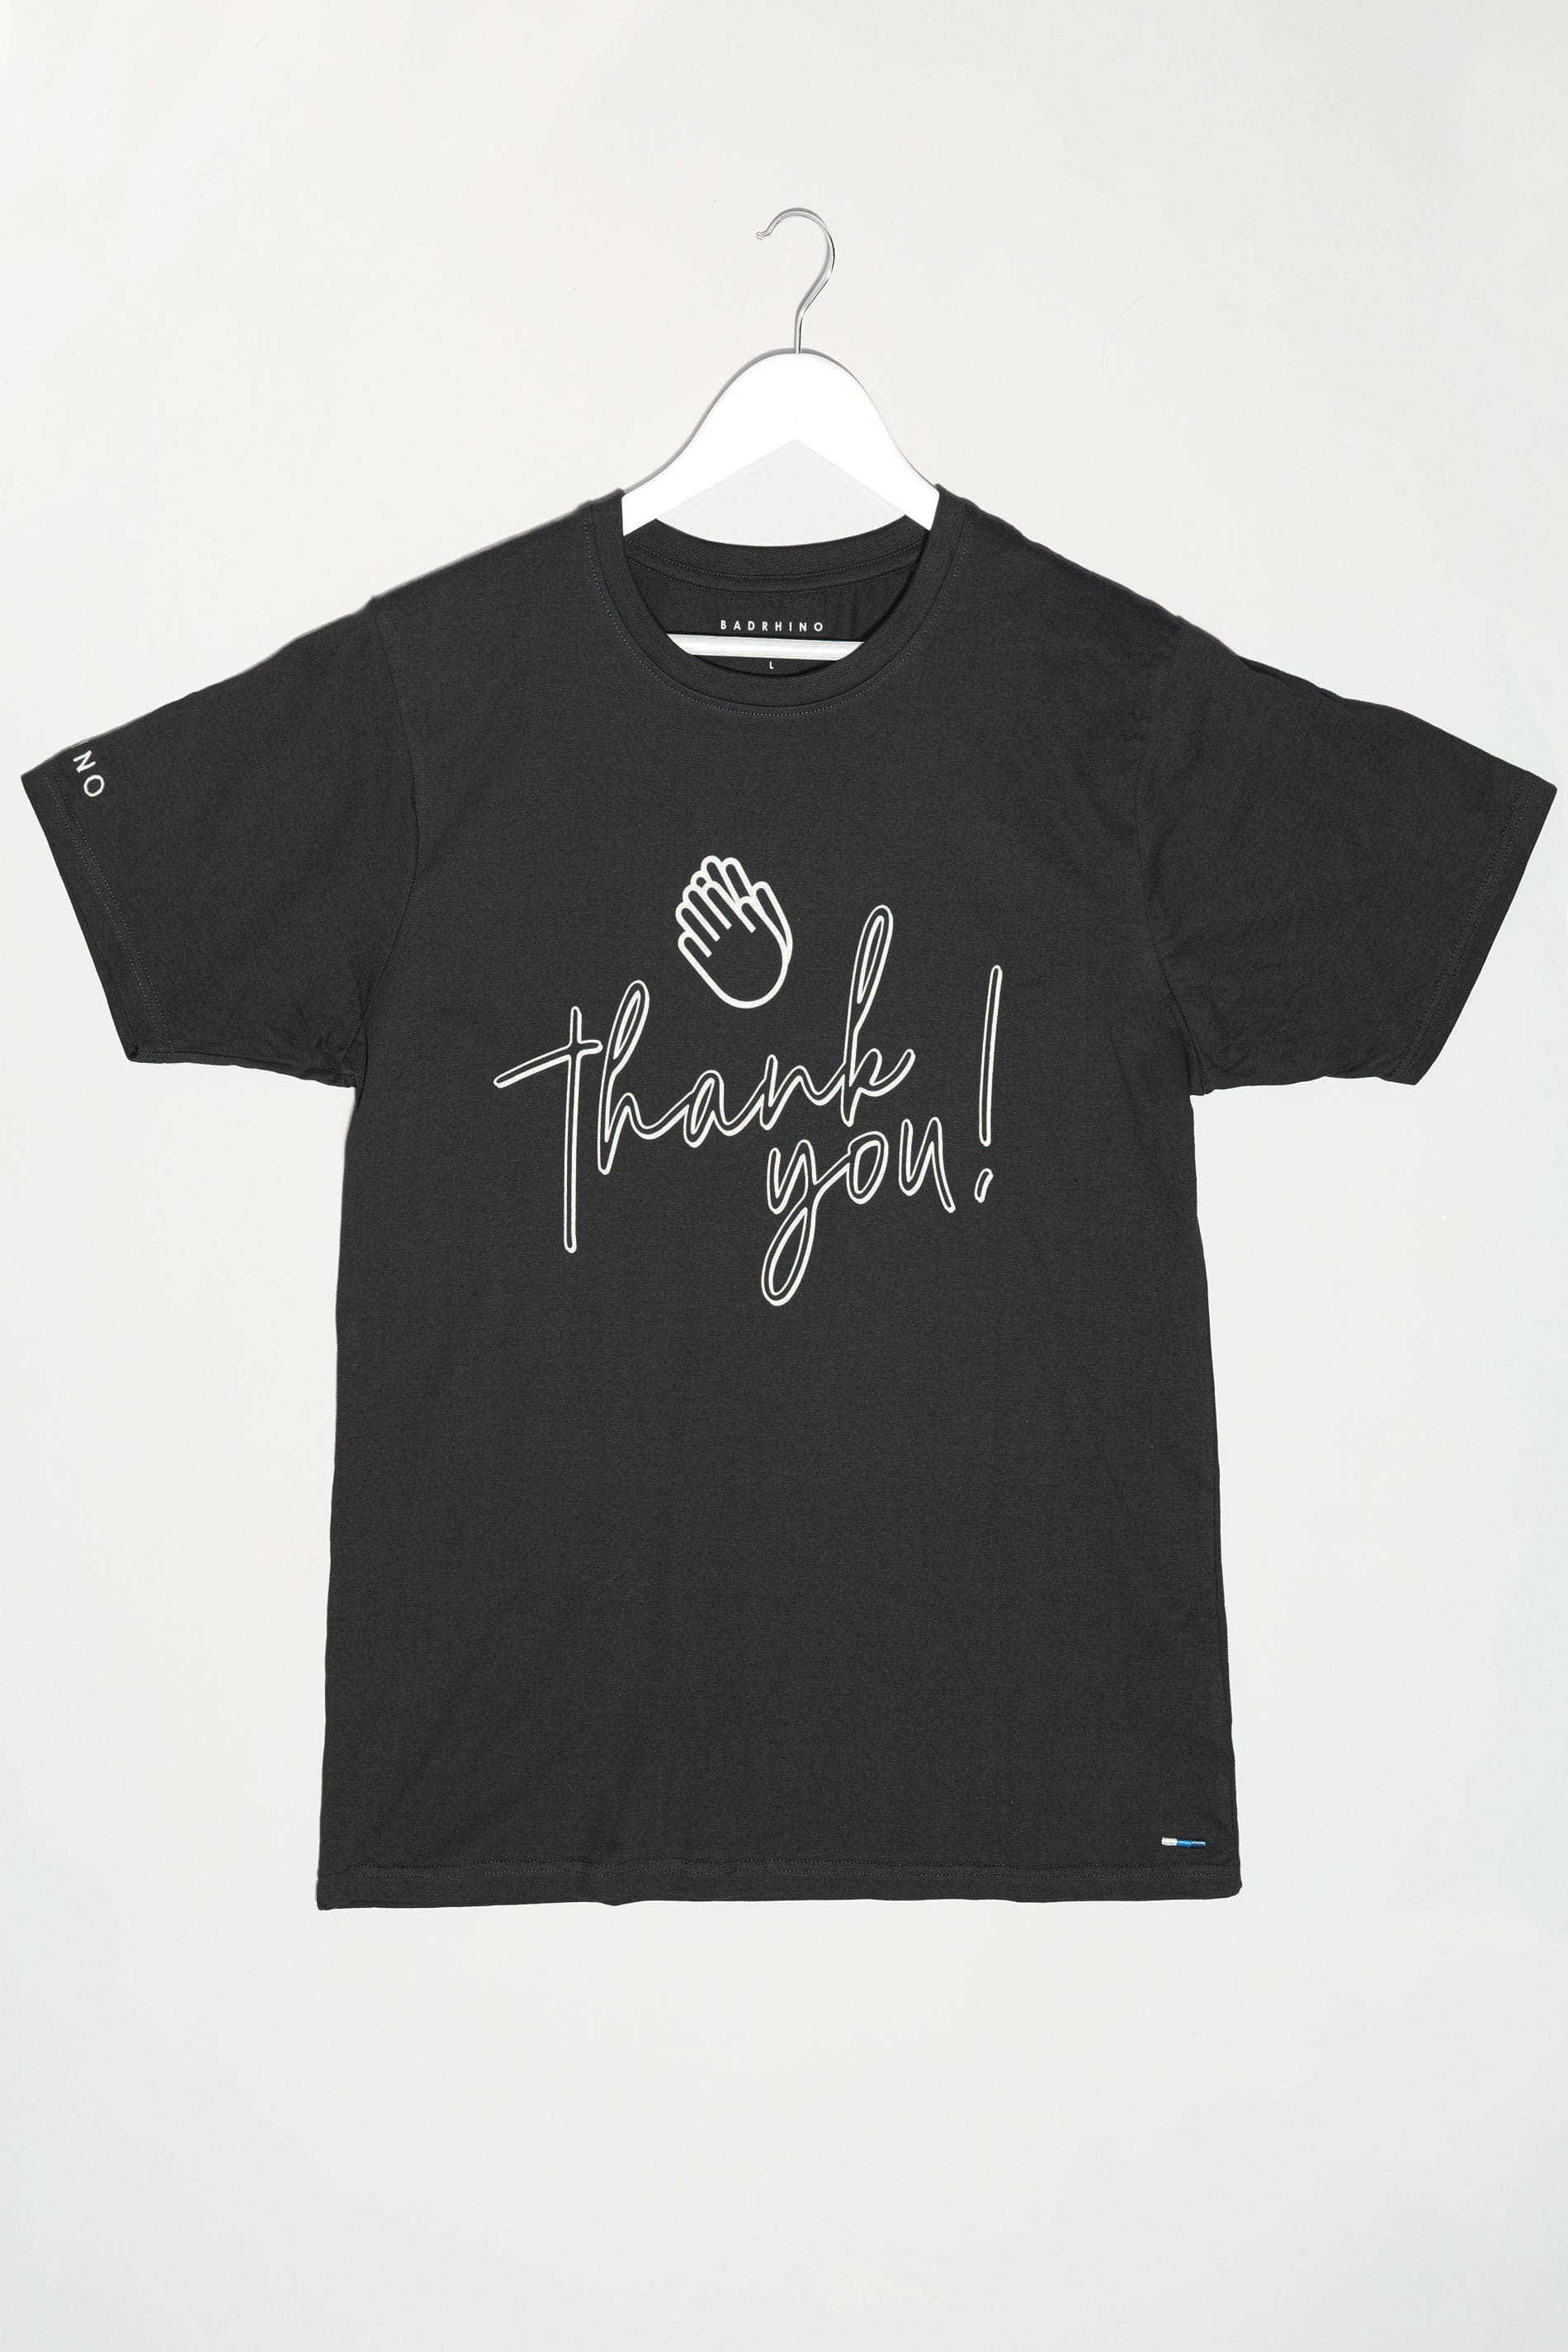 BadRhino Black 'Thank You' Unisex NHS Charity T-Shirt